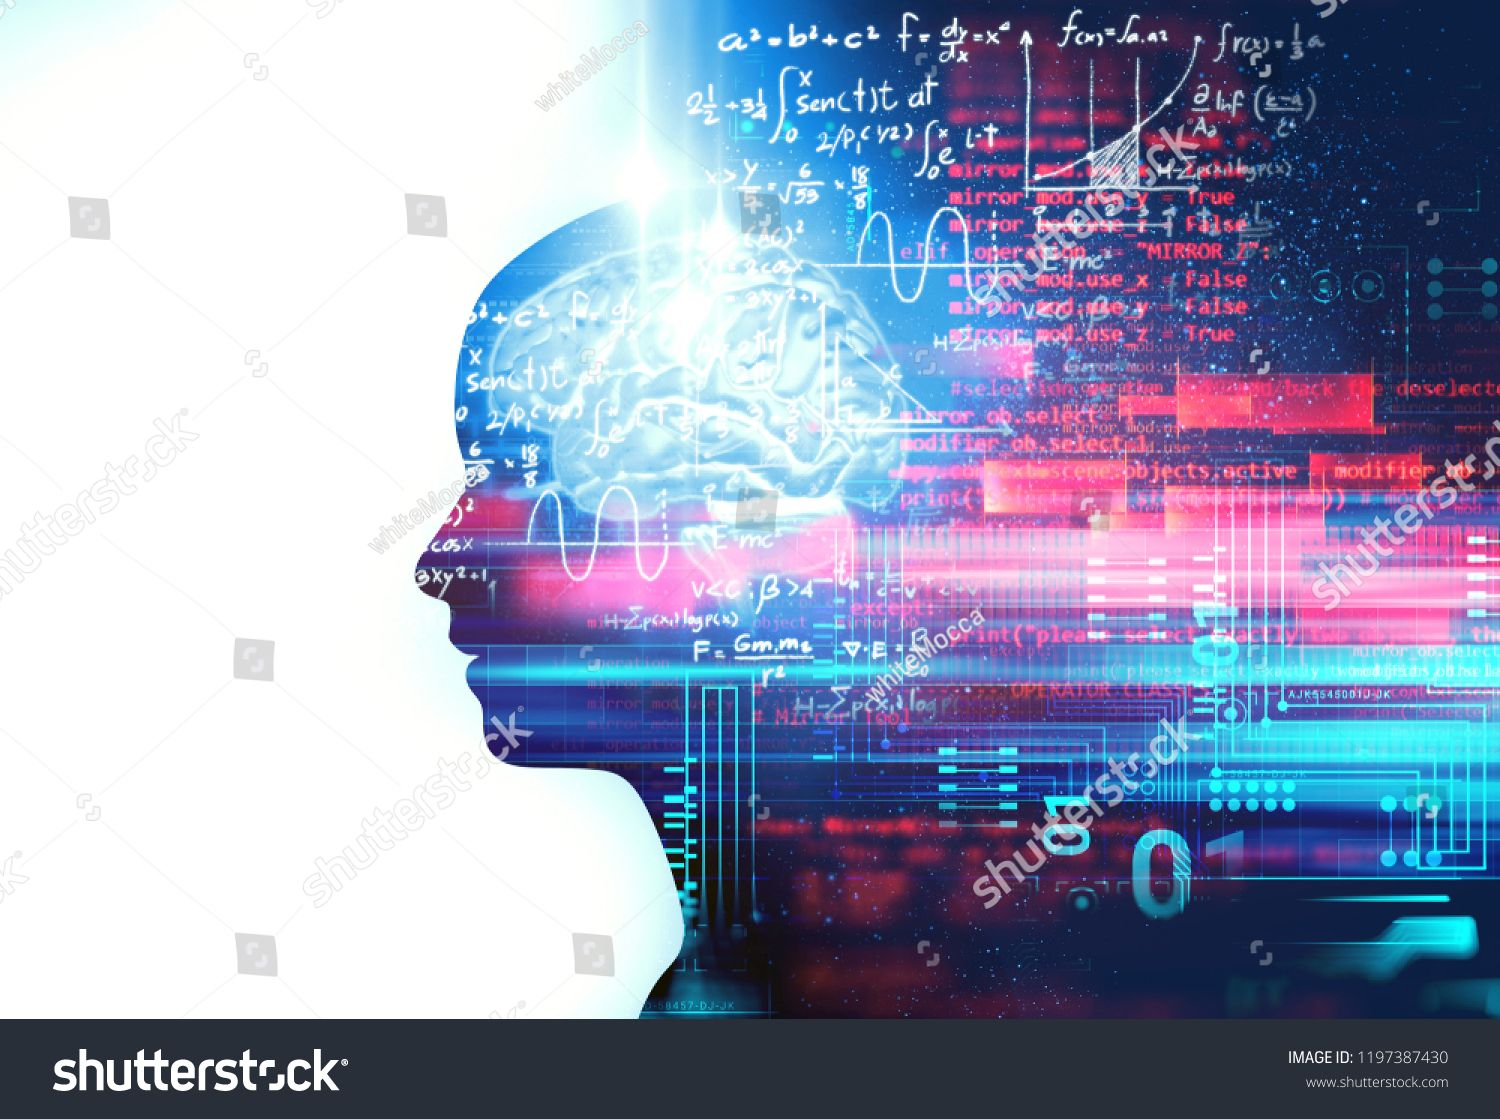 Silhouette Of Virtual Human On Handwritten Equations 3d